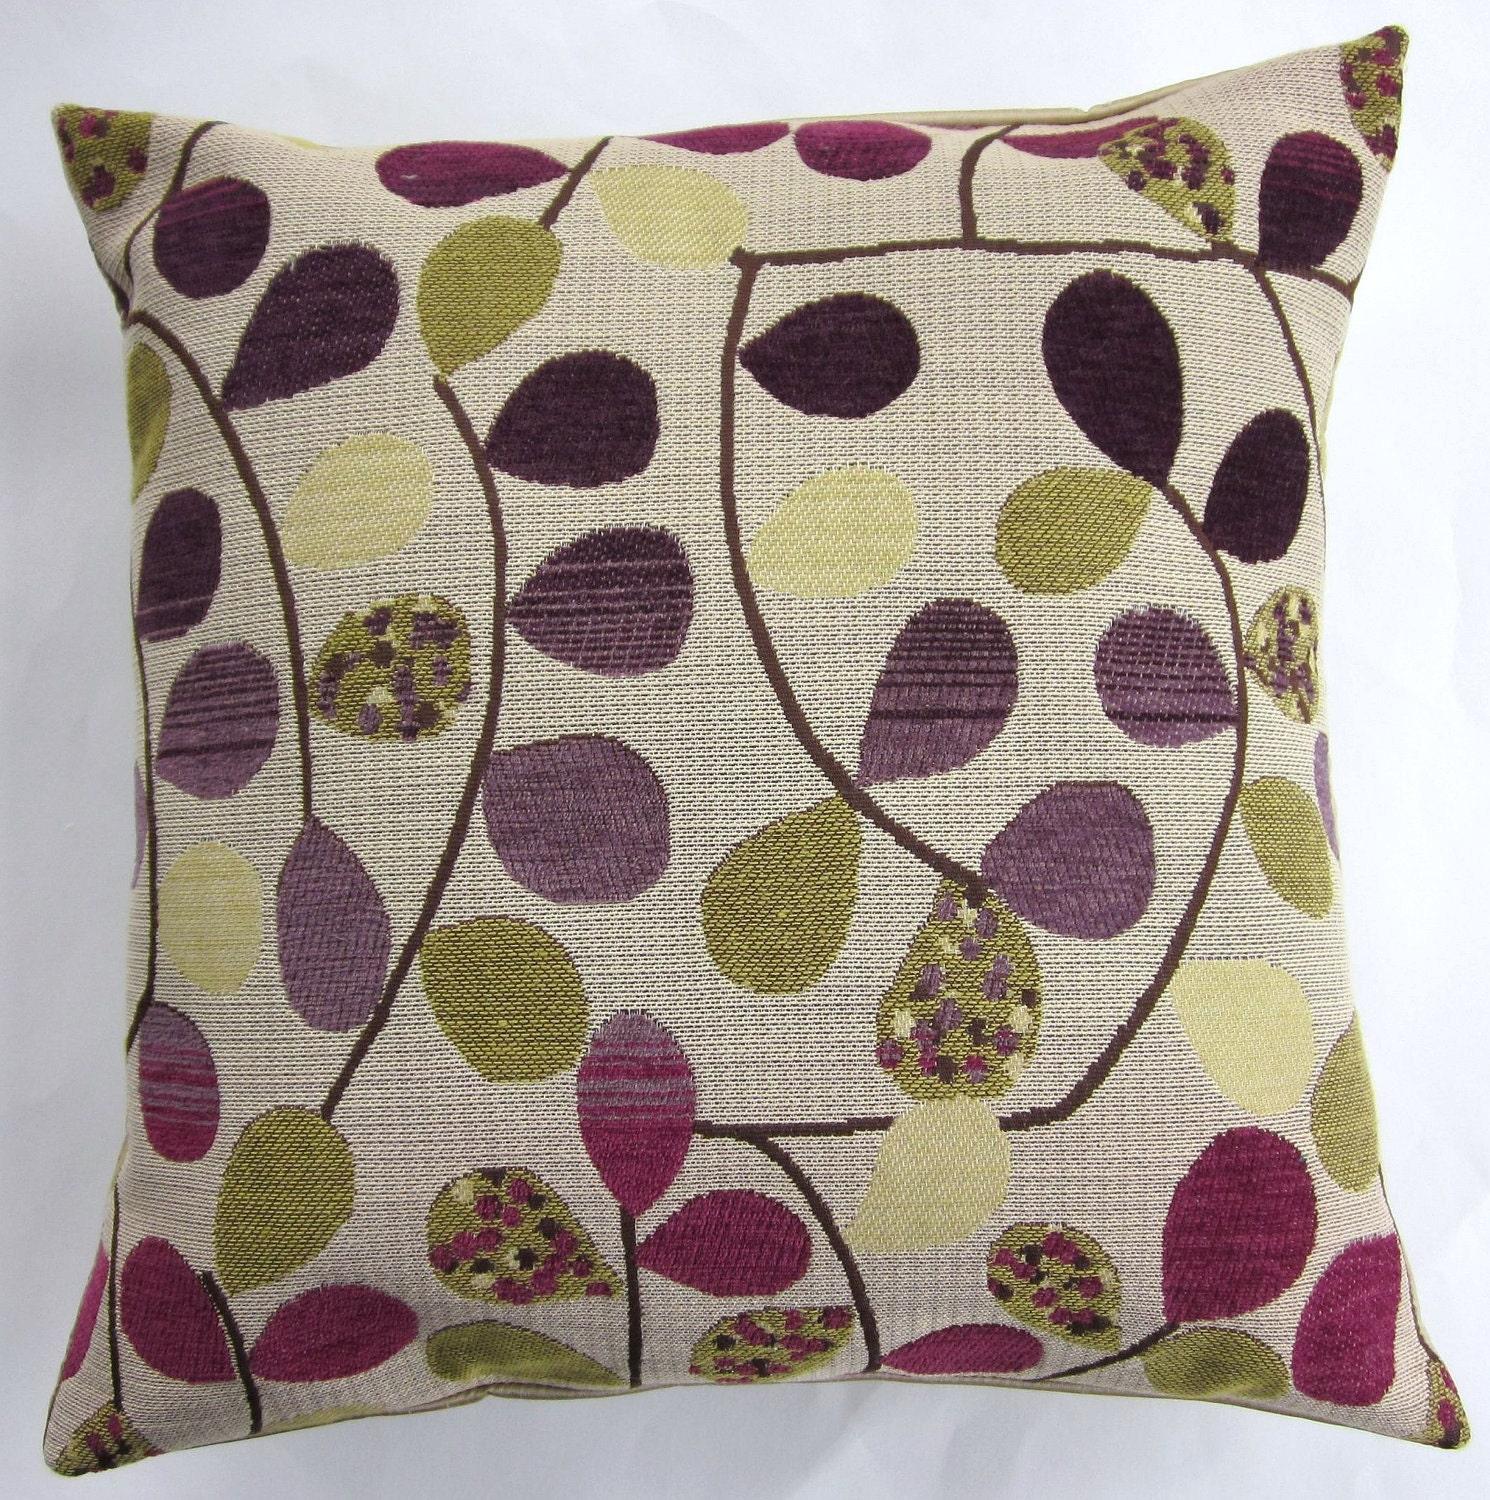 Gold and Purple Throw Pillow Cover Pots of Gold and Purple : ilfullxfull288243480 from www.etsy.com size 1490 x 1500 jpeg 766kB